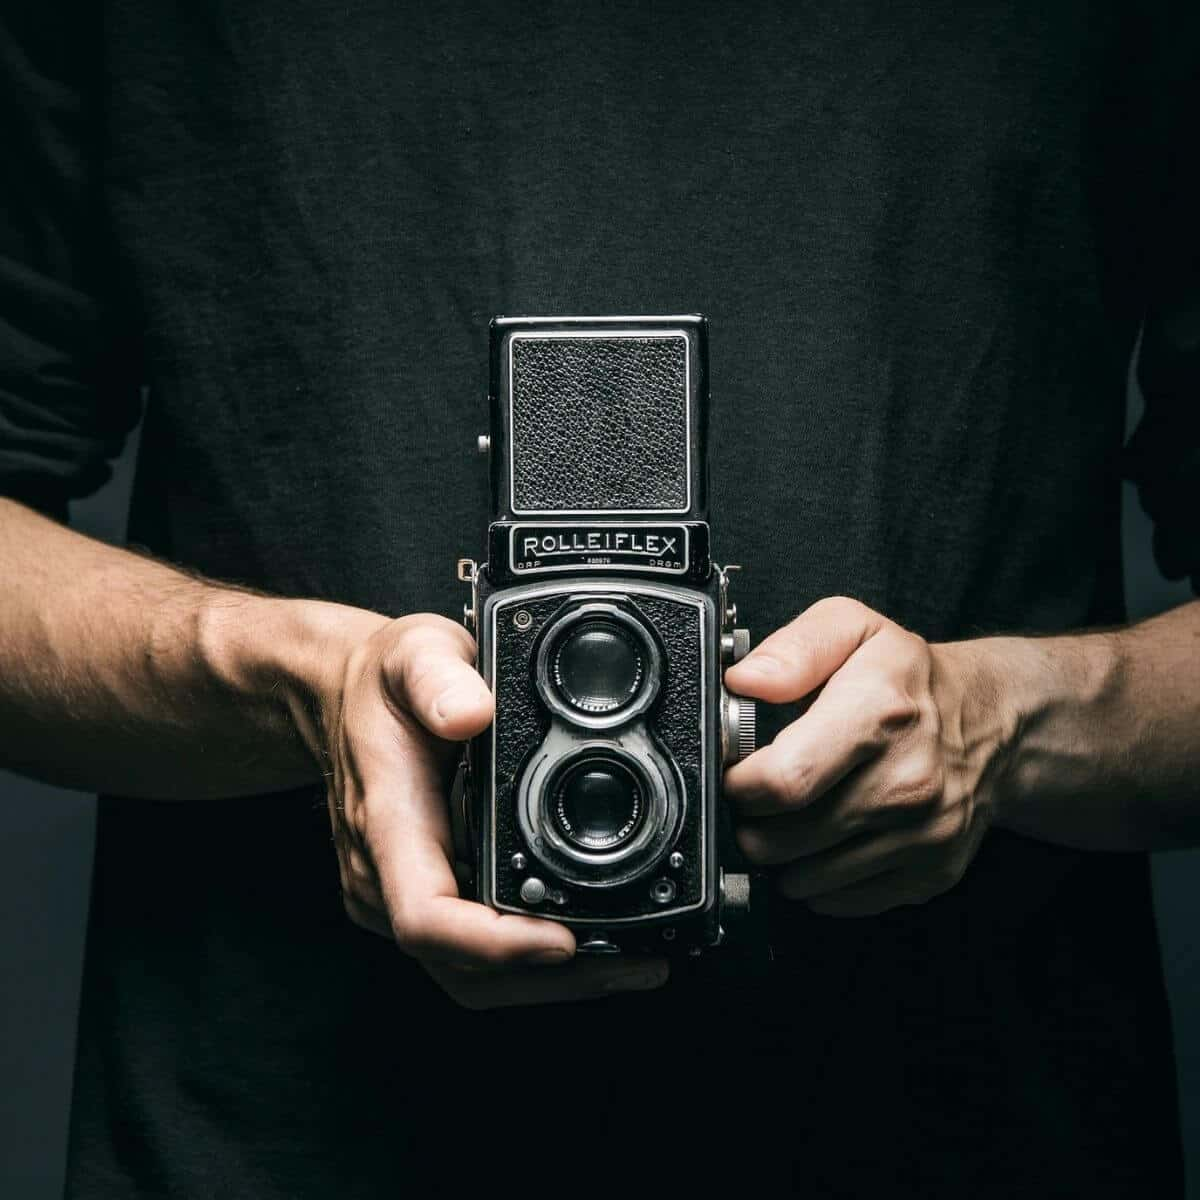 Close-up of a person holding a Rolleiflex camera.